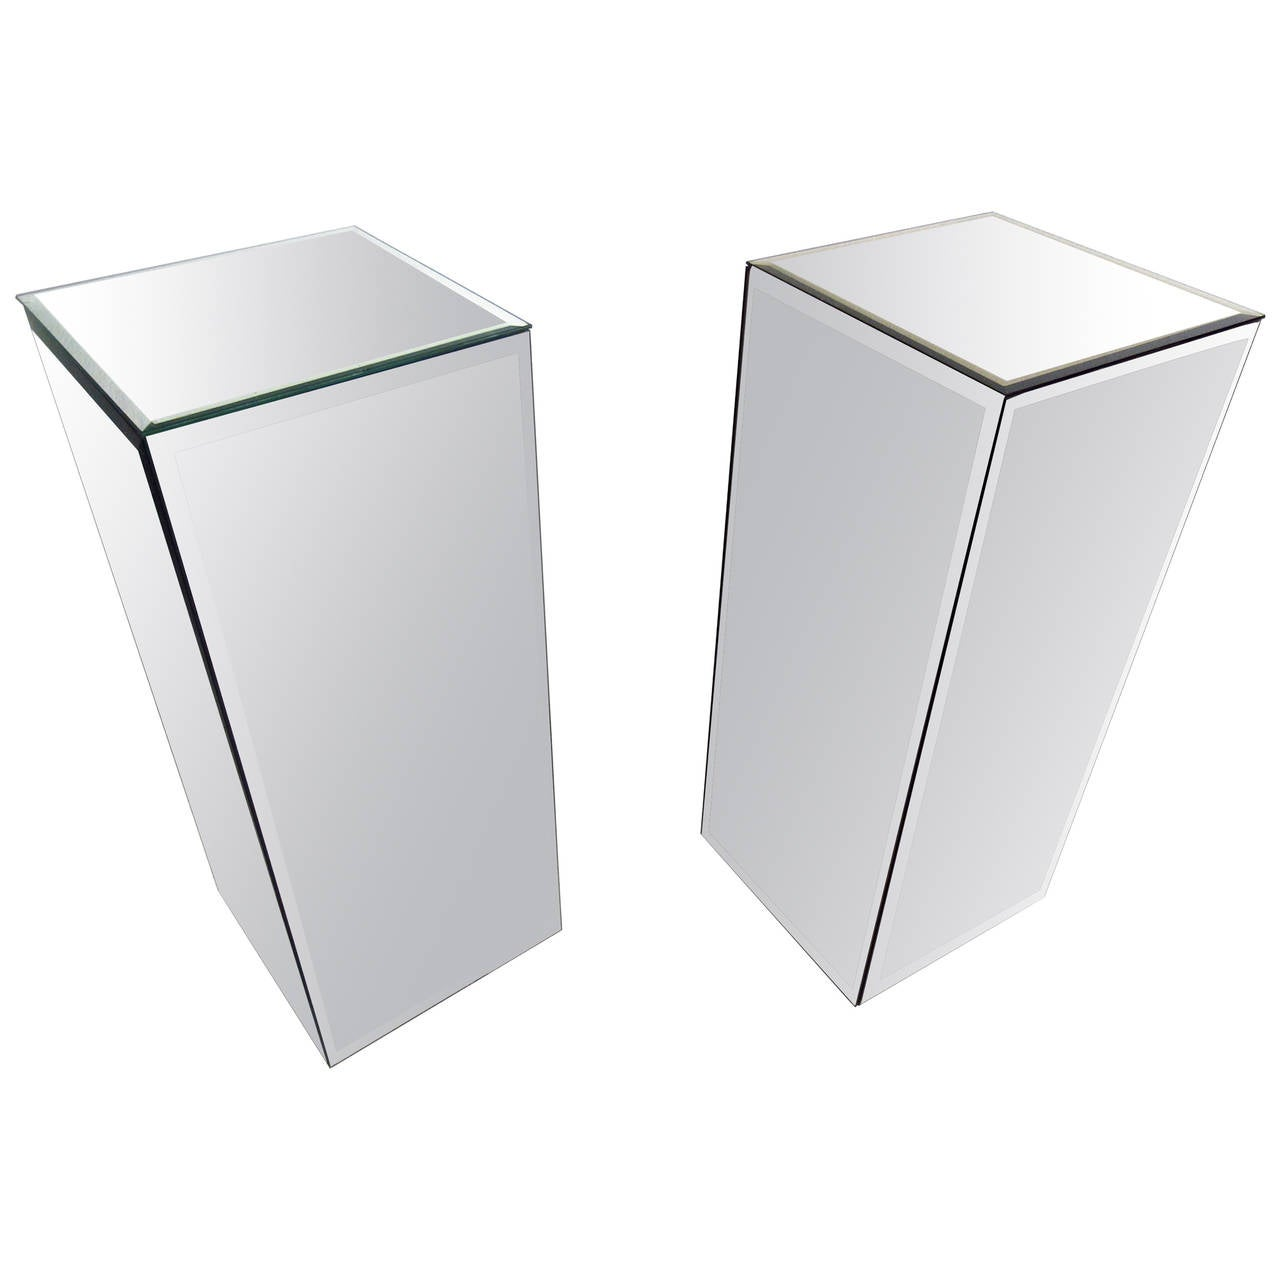 Pair Of Mirrored Pedestals At 1stdibs